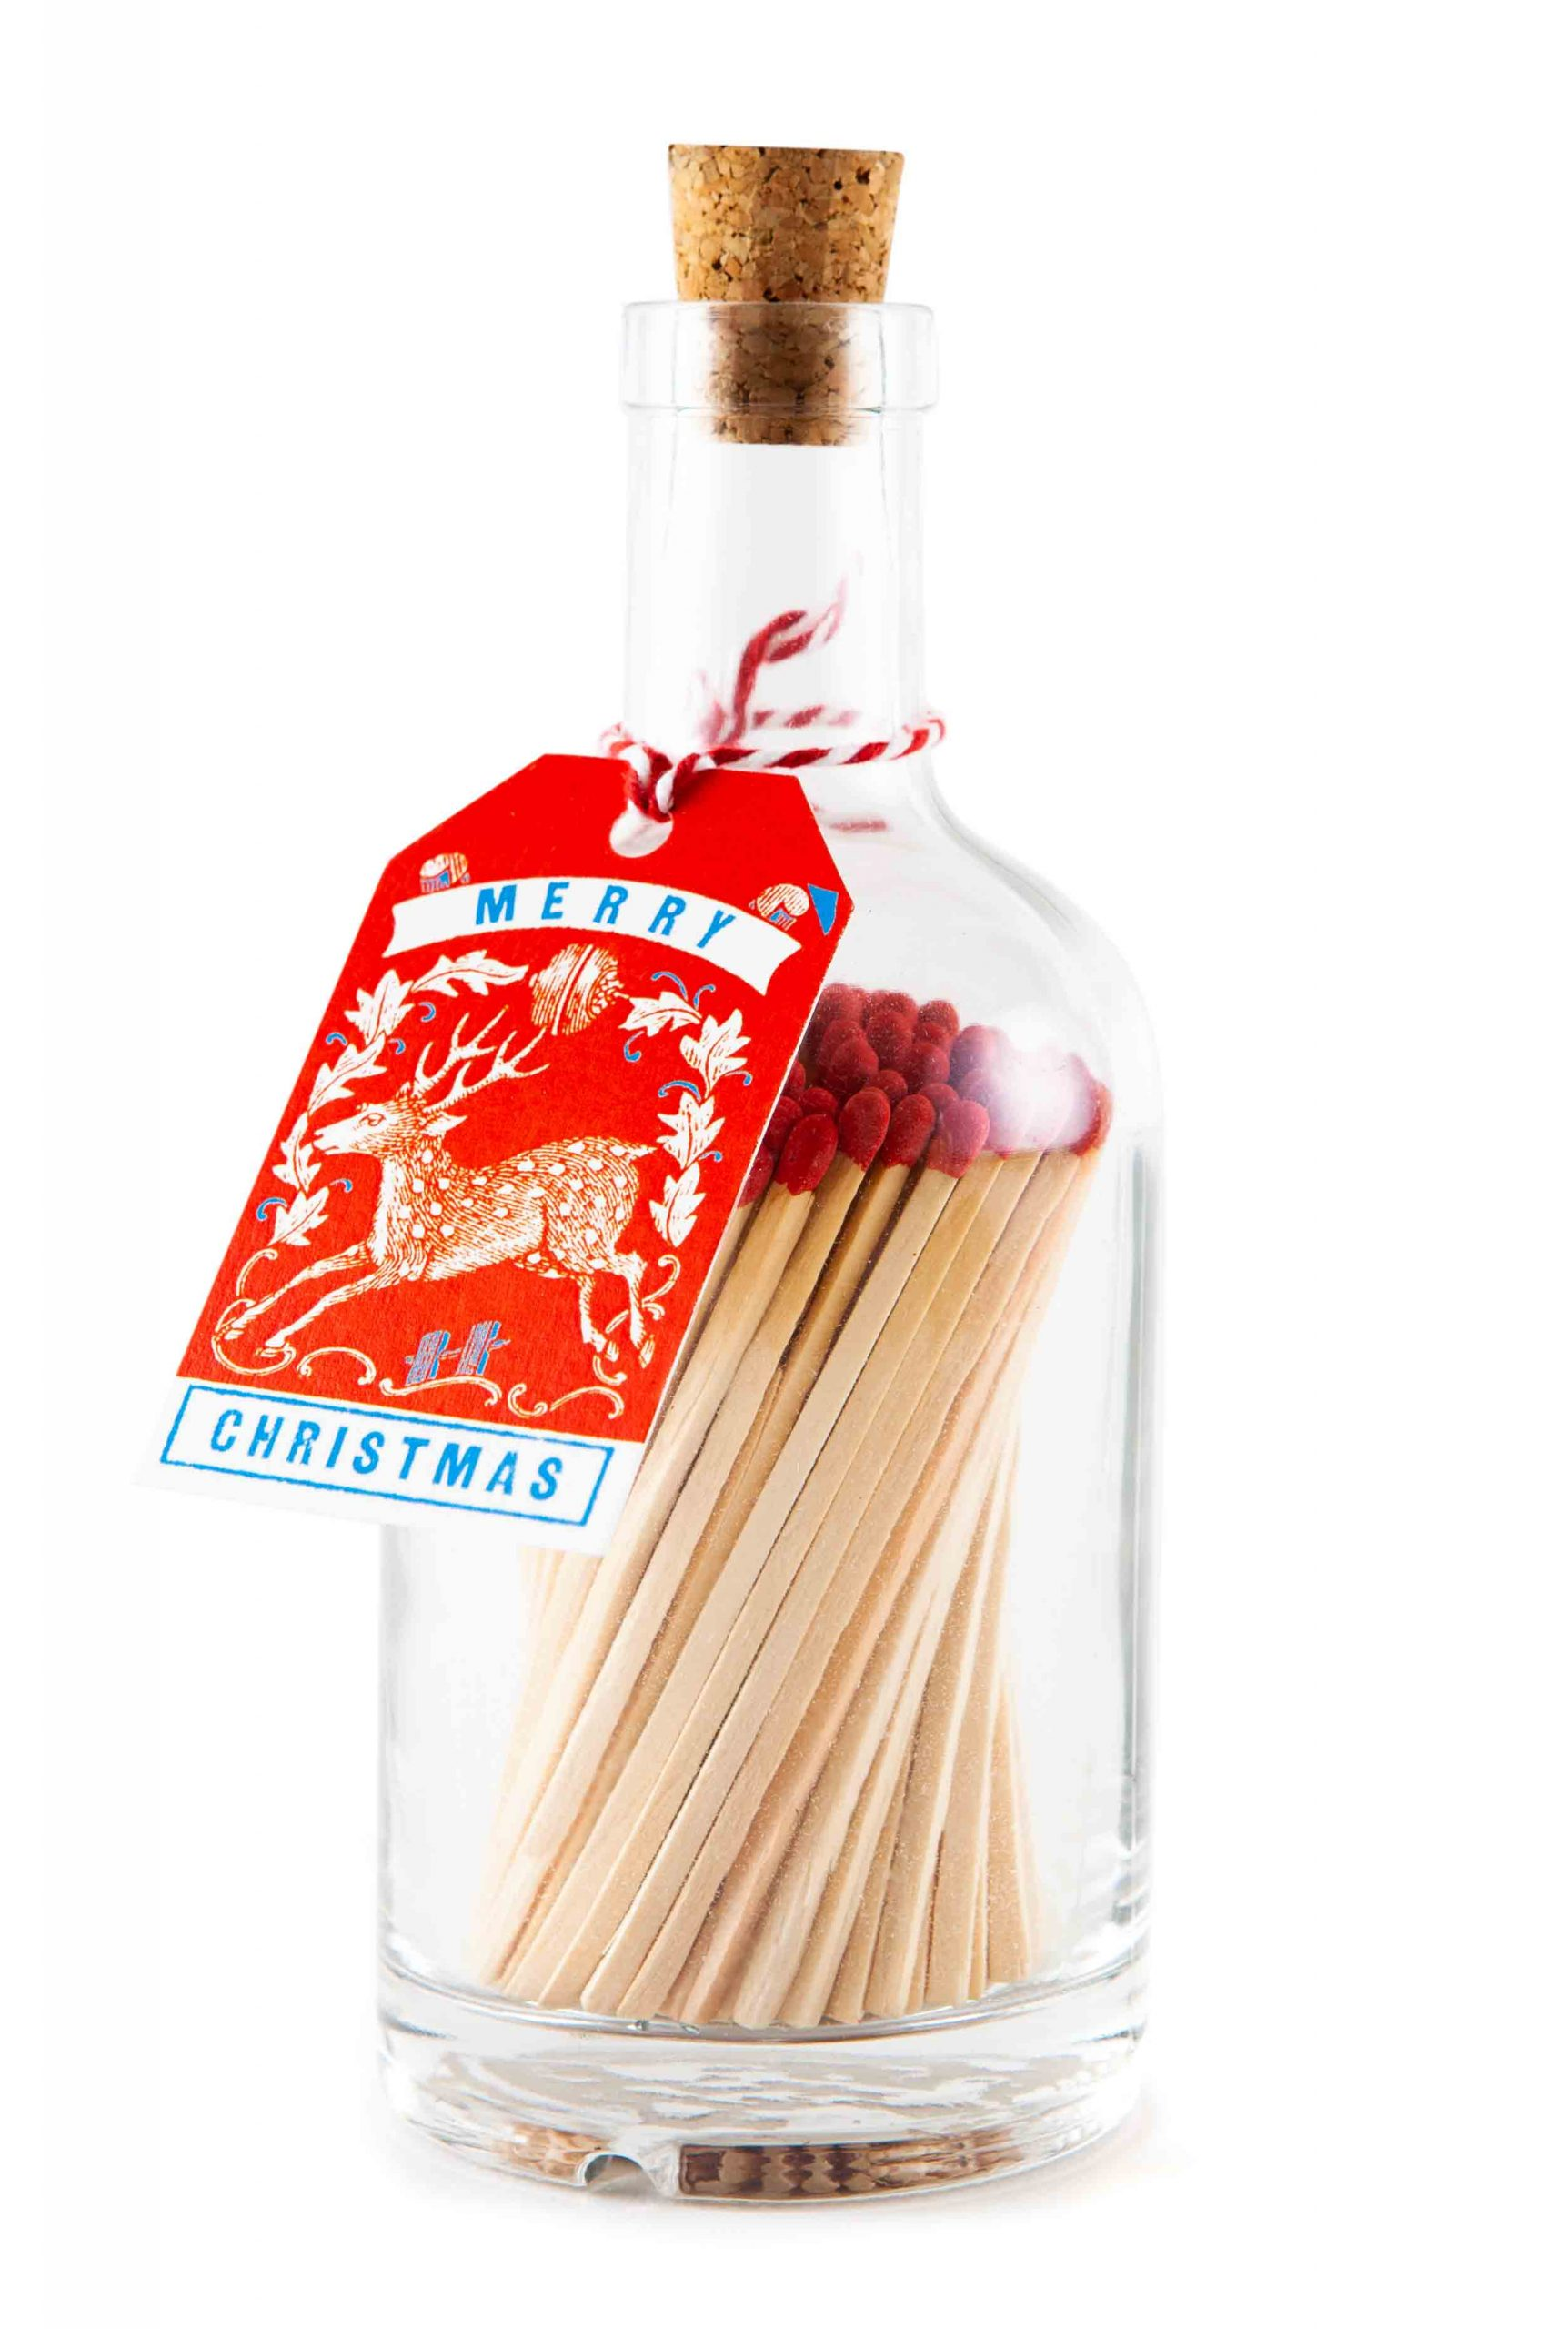 Christmas Matches in Glass Jar - Red Stag